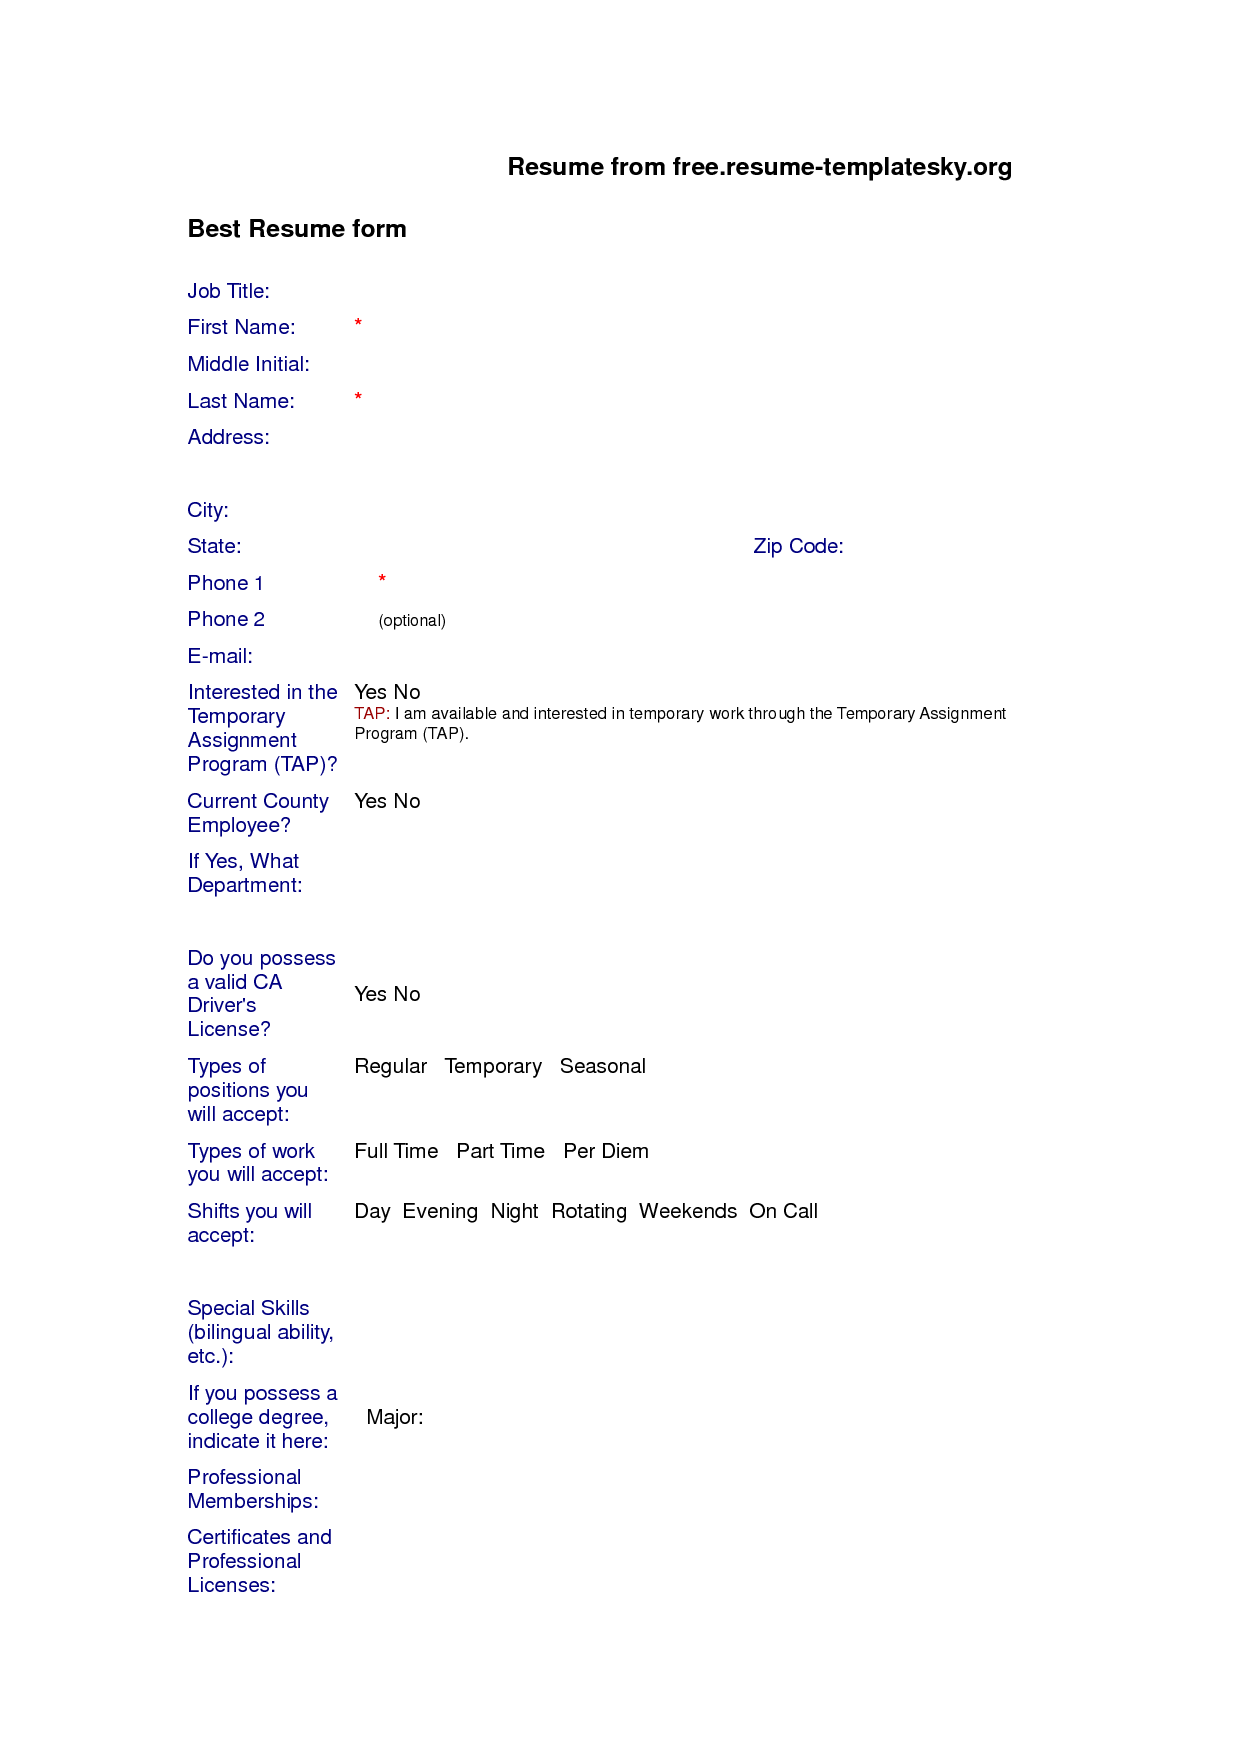 Resume Form Download Free Download Free Blank Resume Forms  Download Form Free Resume  Doc .